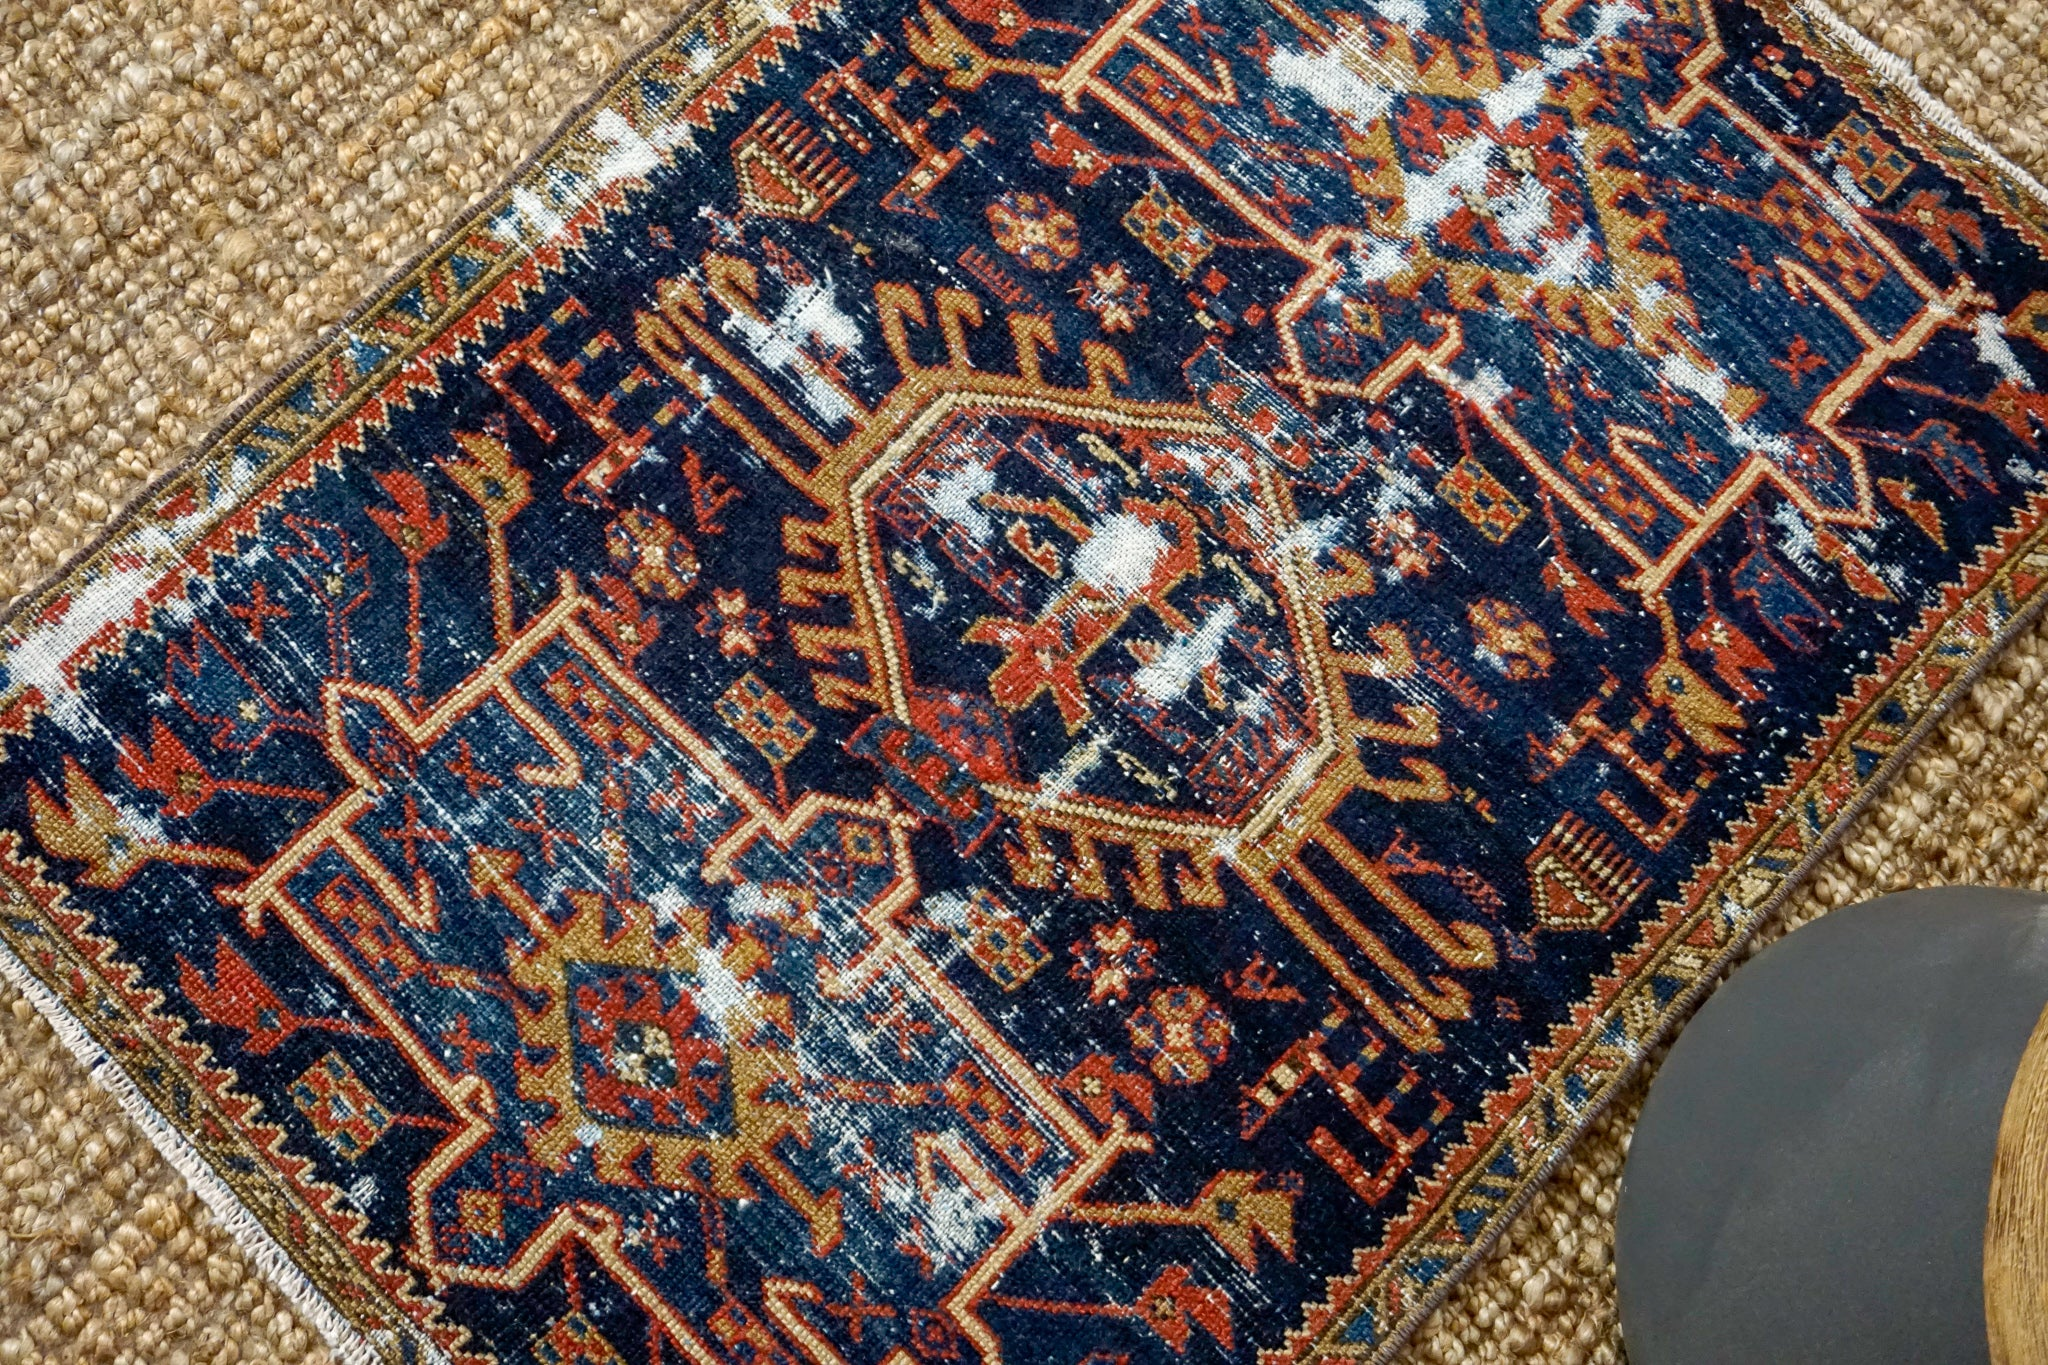 2'6 x 3'7 Classic Vintage Handmade Carpet Jewel Tones Navy, Red, Gold